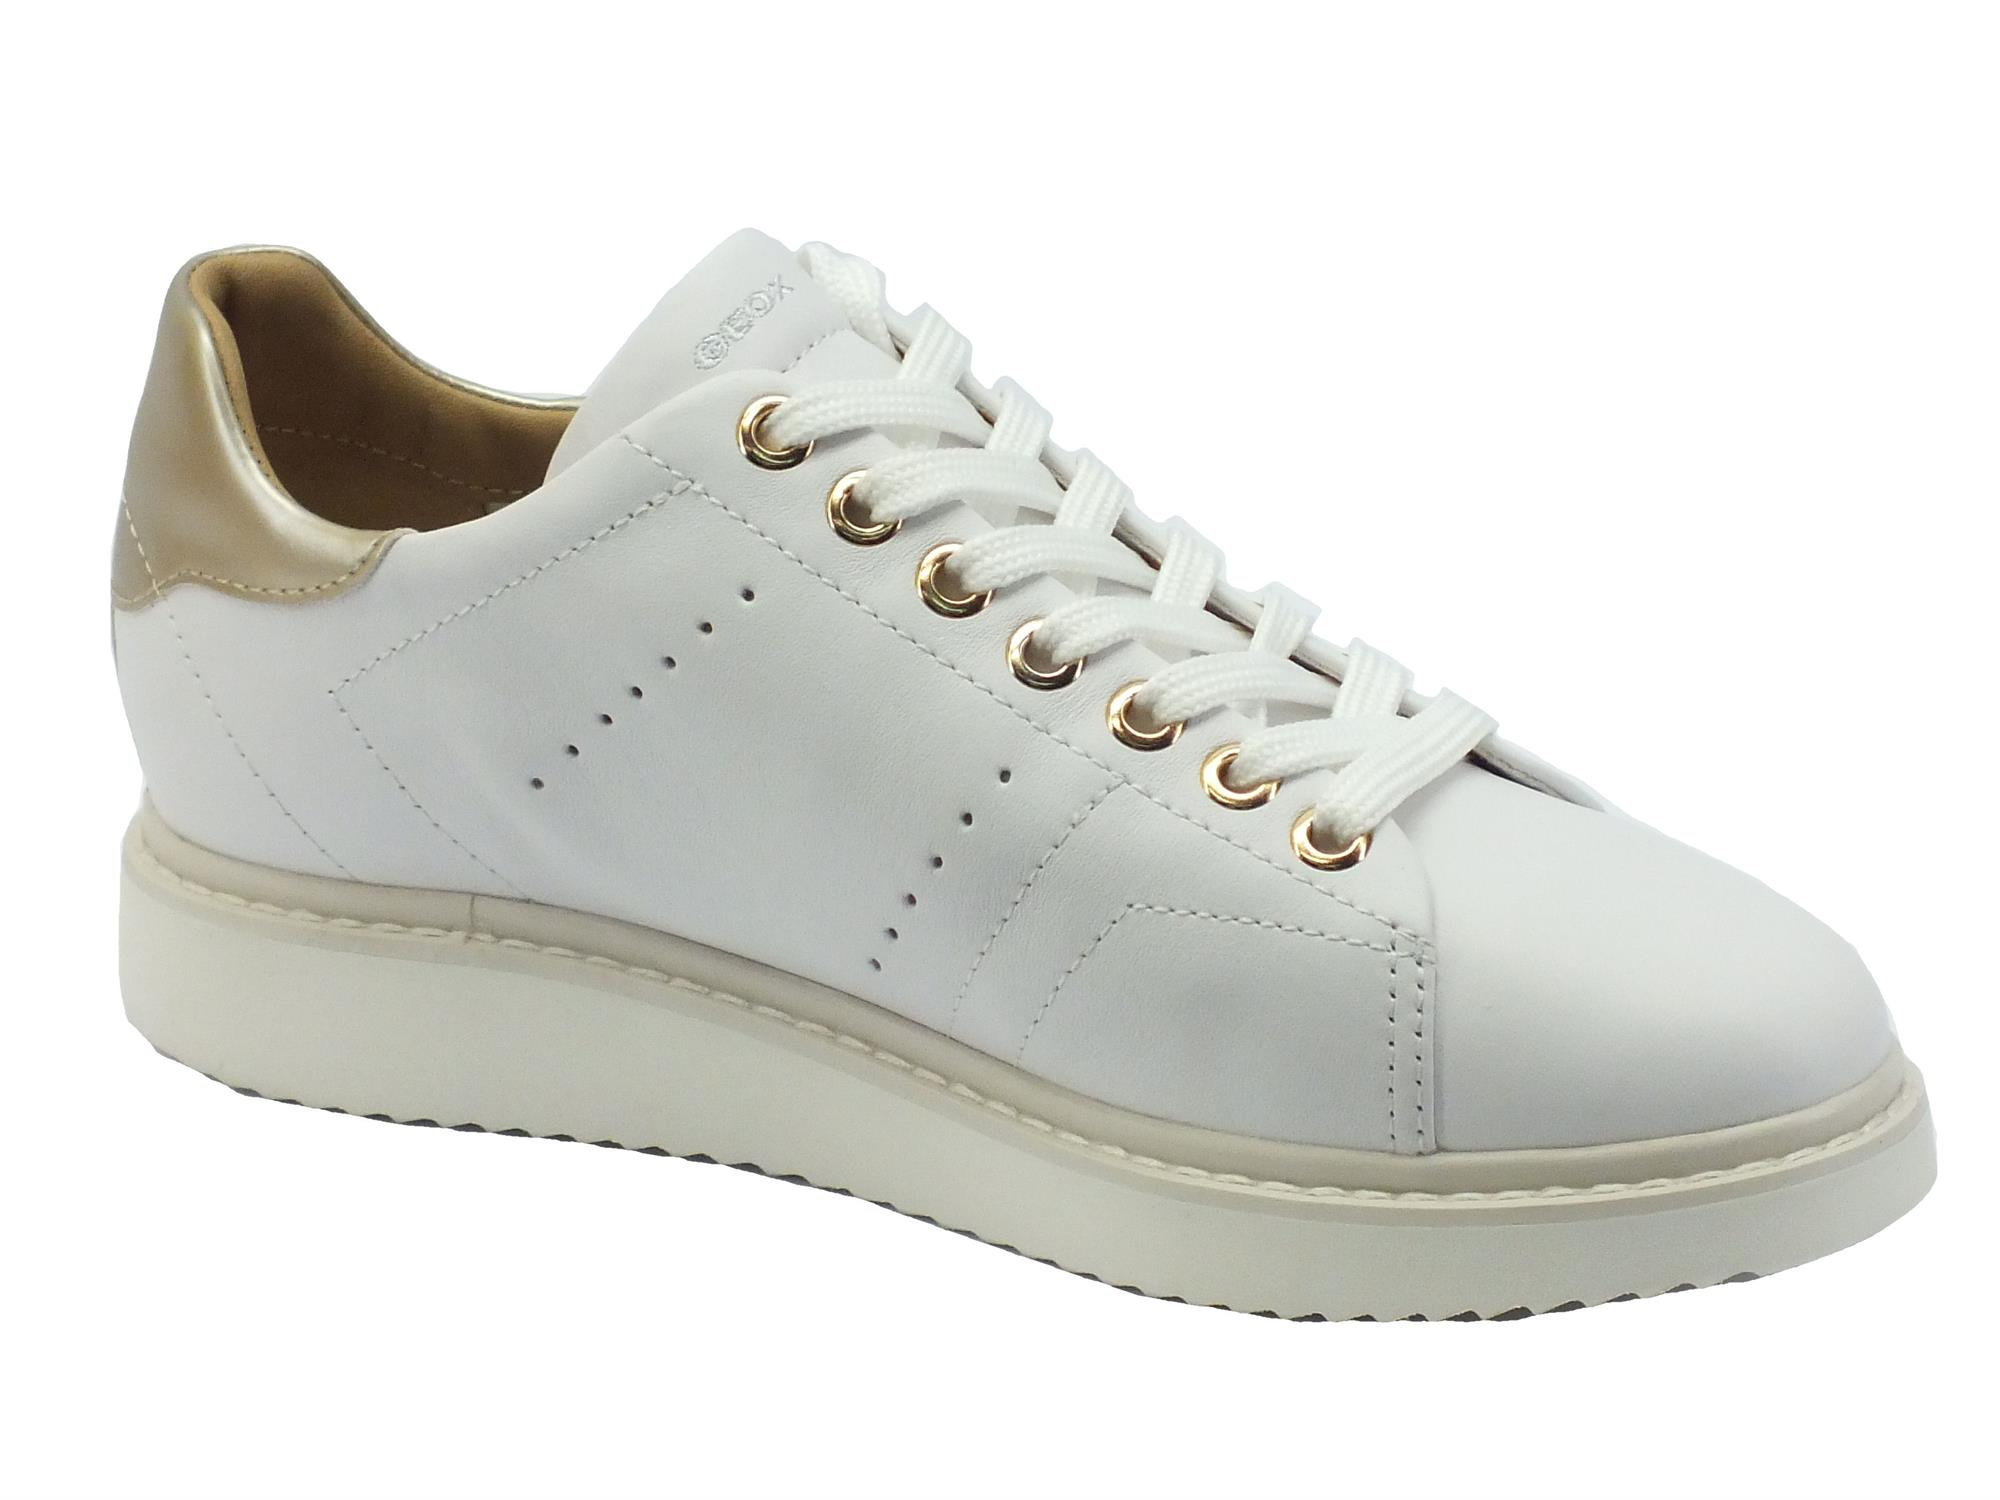 GEOX donna sneakers nere in vera pelle 36.